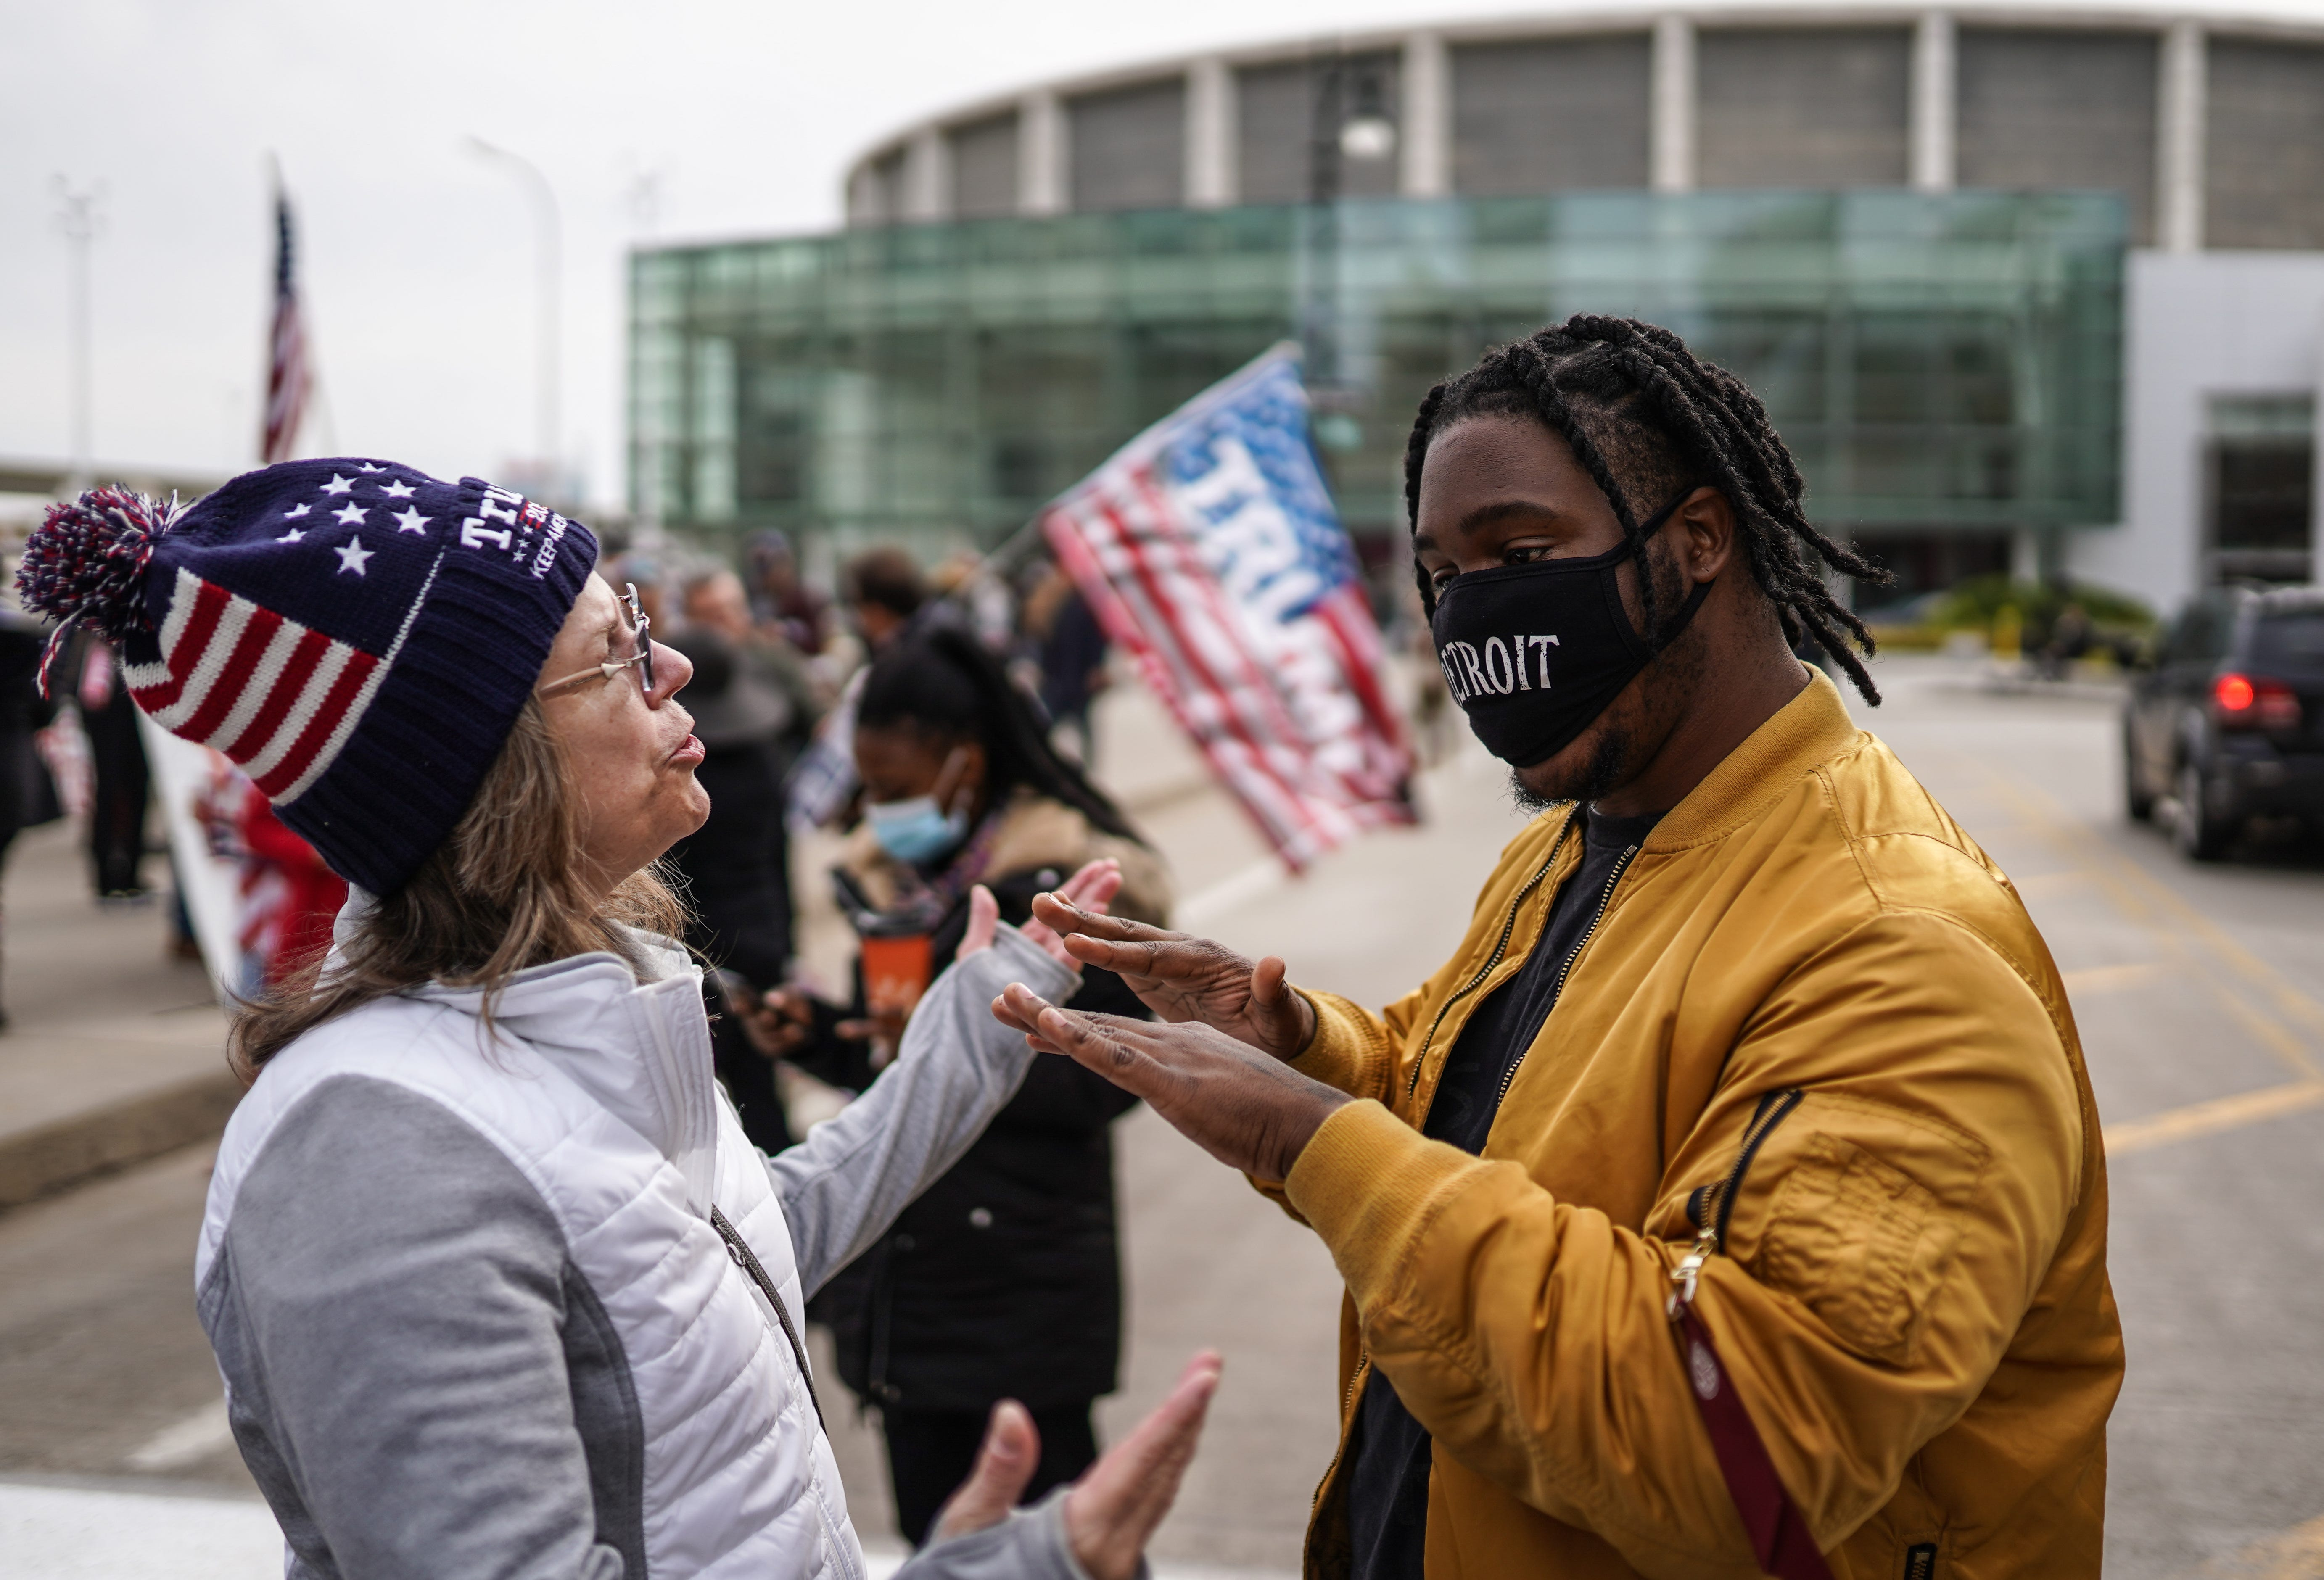 Angelo Austin, right, of Detroit asks a Trump supporter to back away from him since she isn't wearing a mask. Trump supporters gathered outside the TCF Center in Detroit on Nov. 5 as absentee ballots were counted.